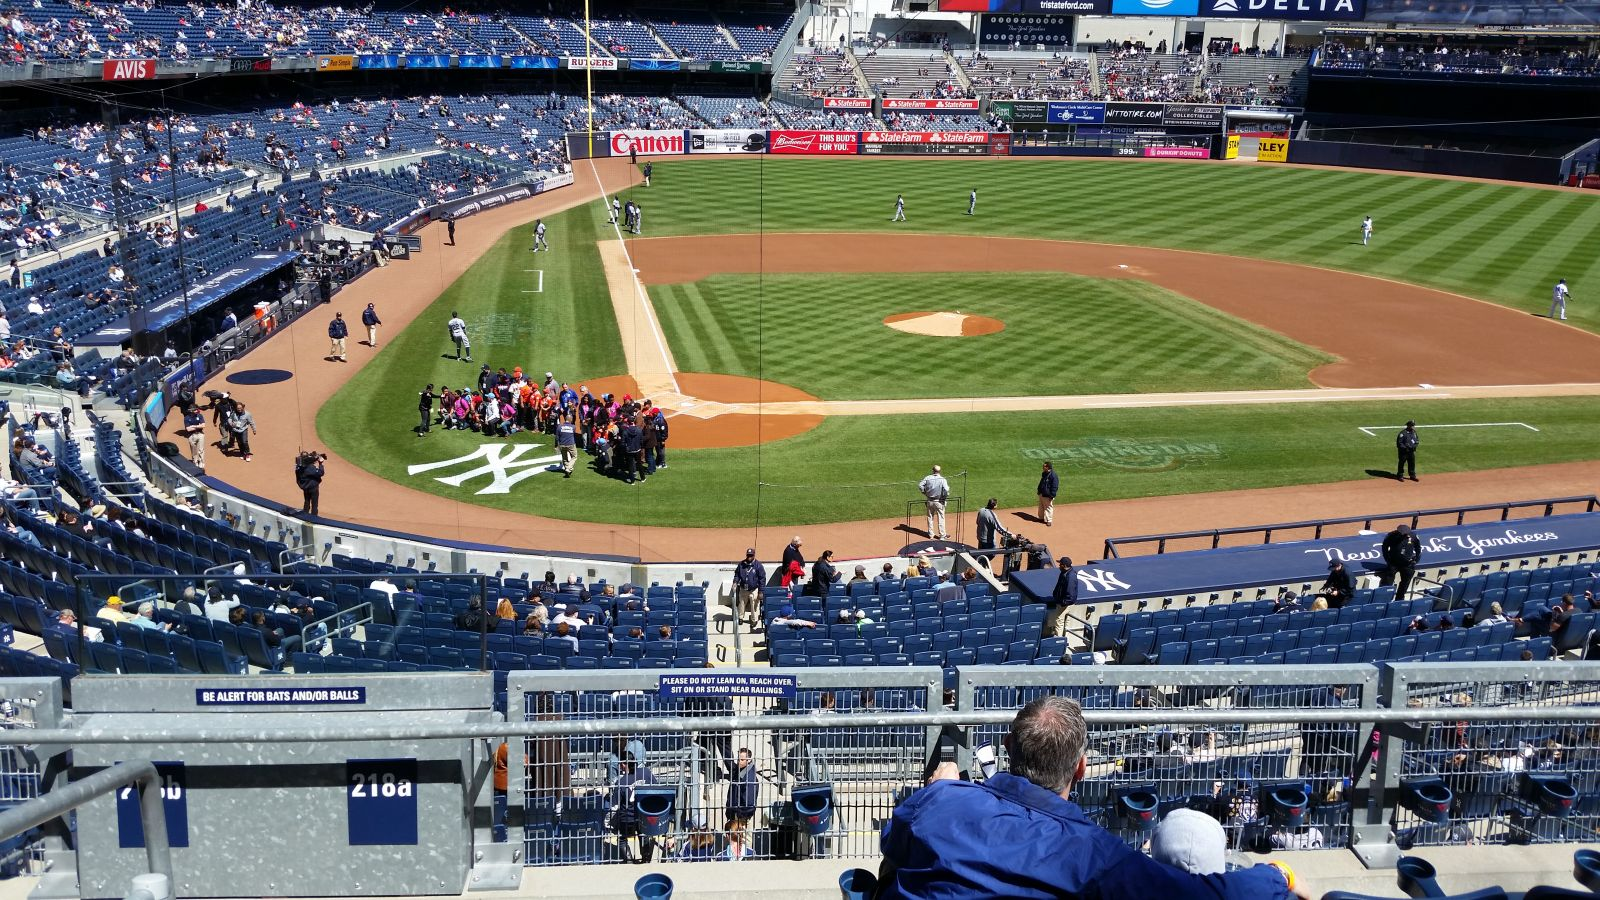 New York Yankees Seat View for Yankee Stadium Section 218A, Row 5, Seat 13